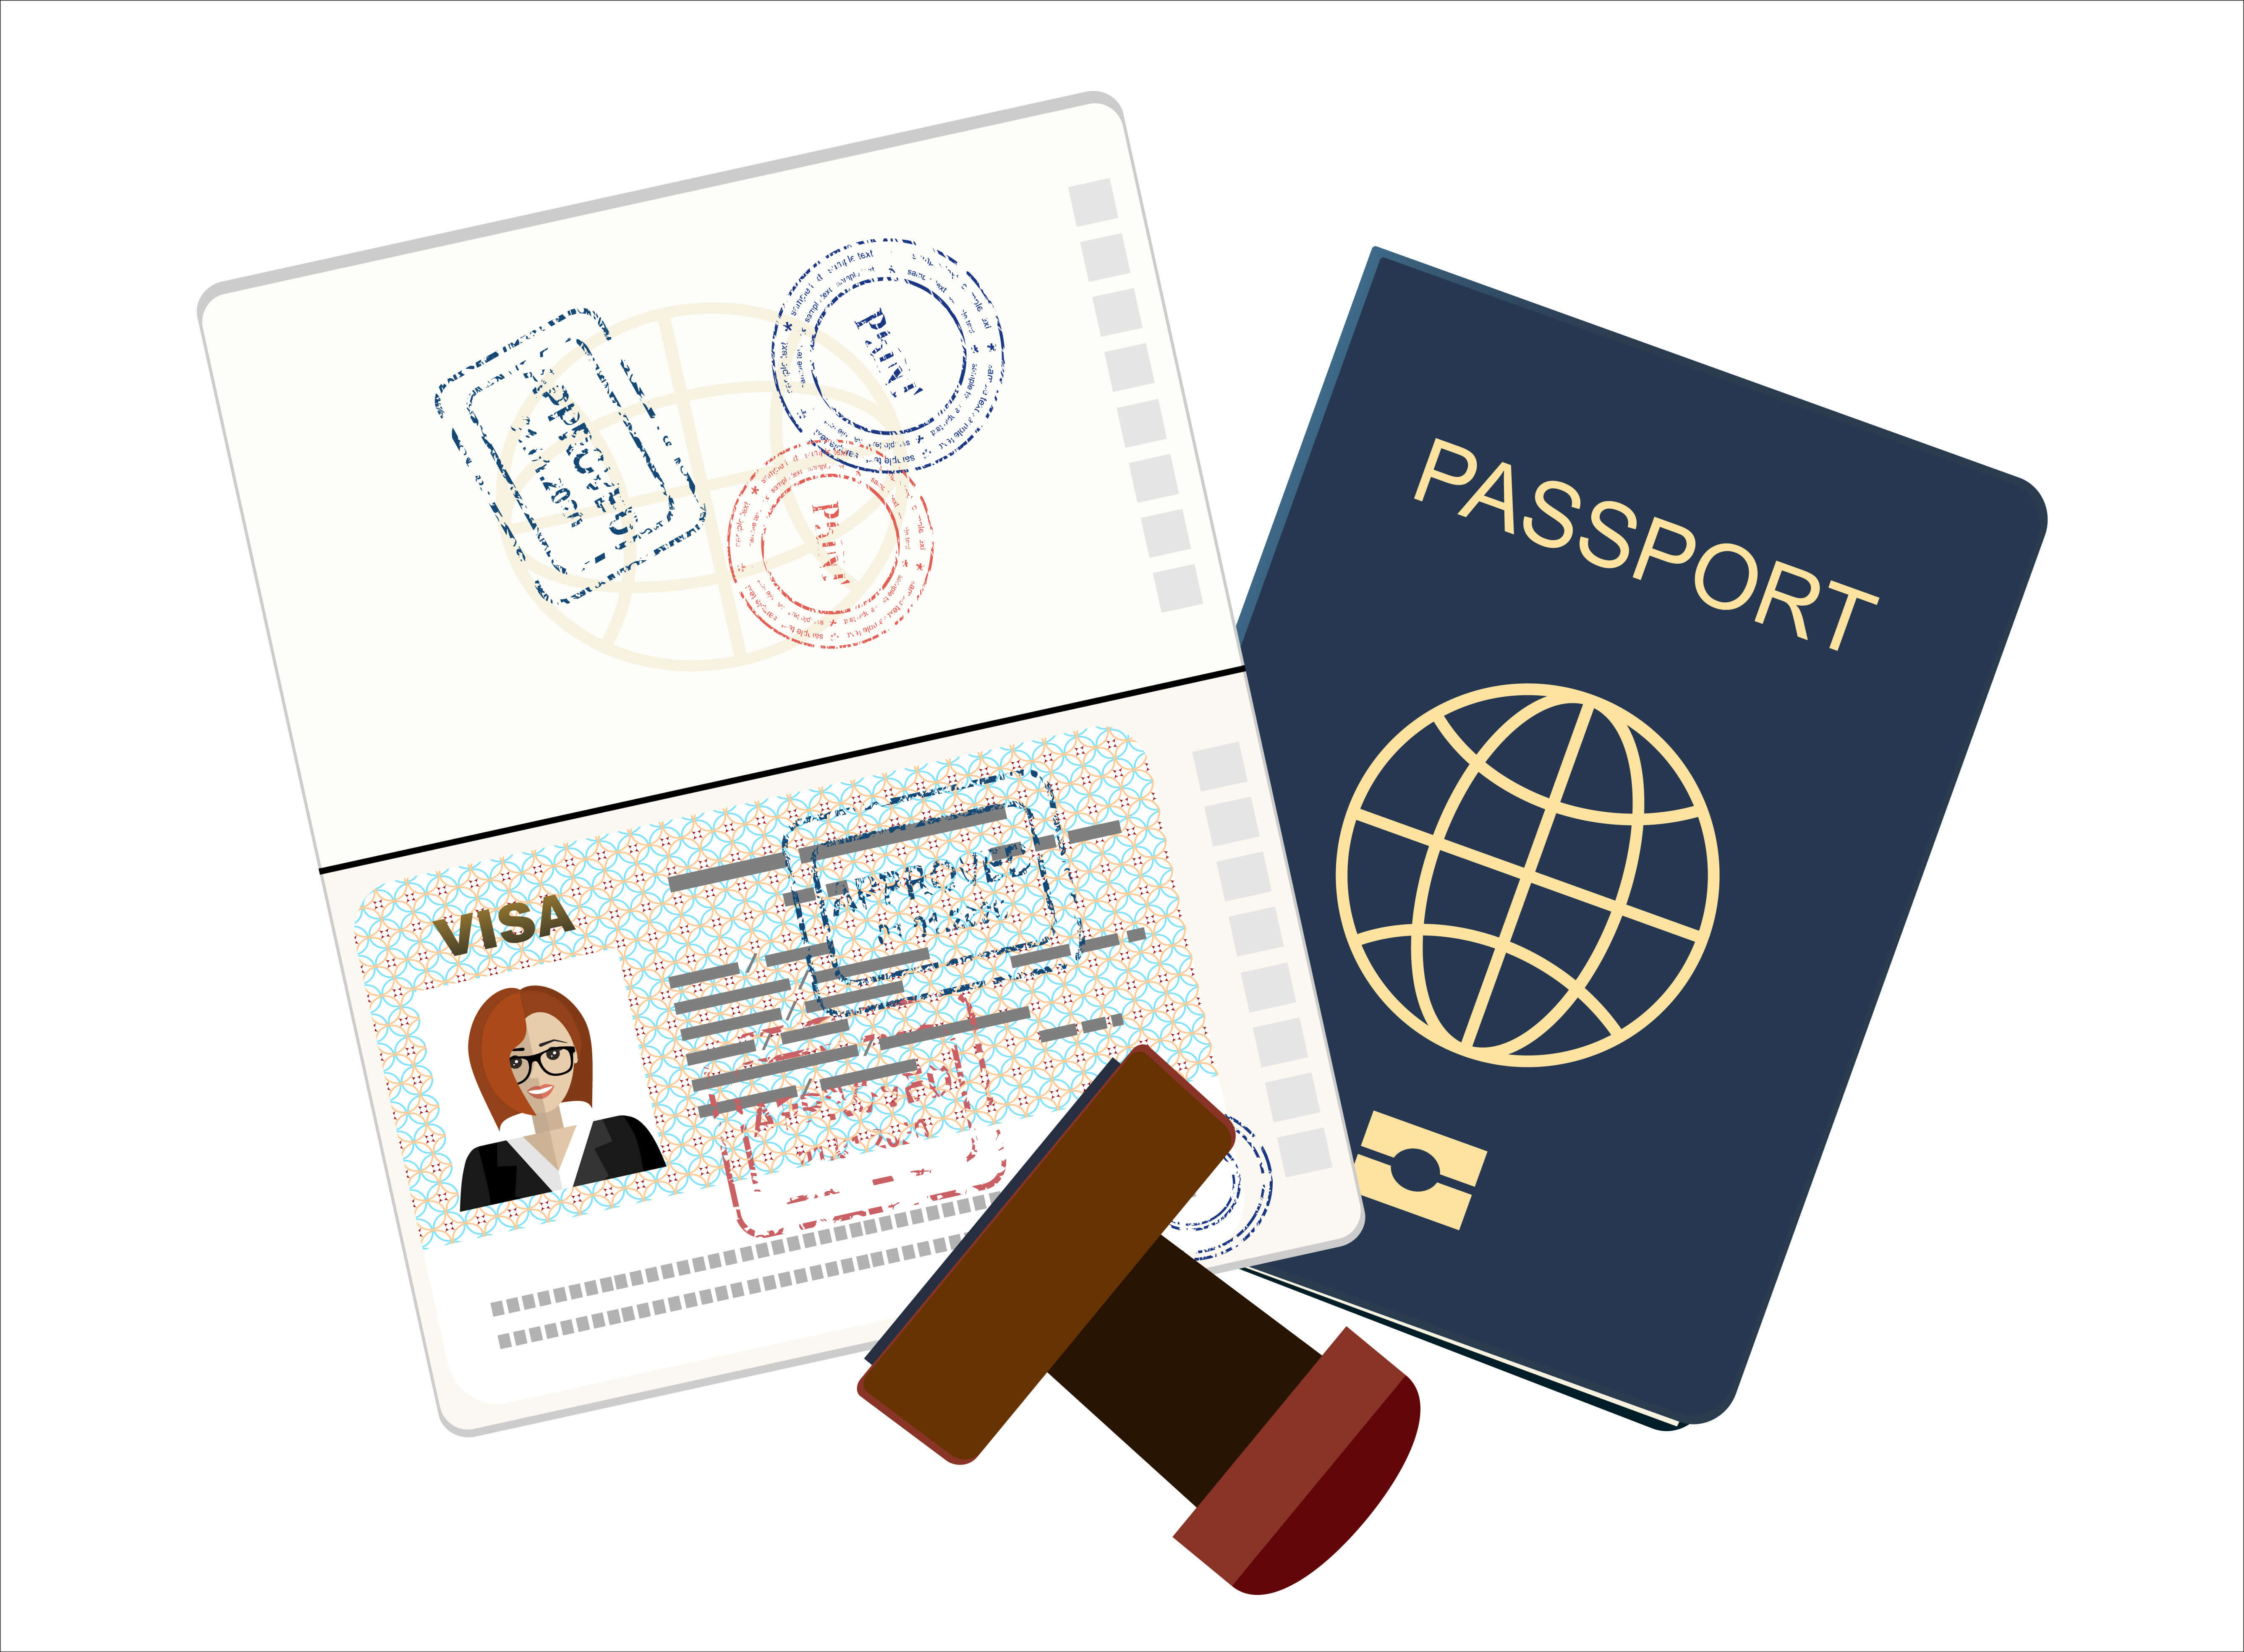 passport copy 1 - How Much Is A Passport In Florida?